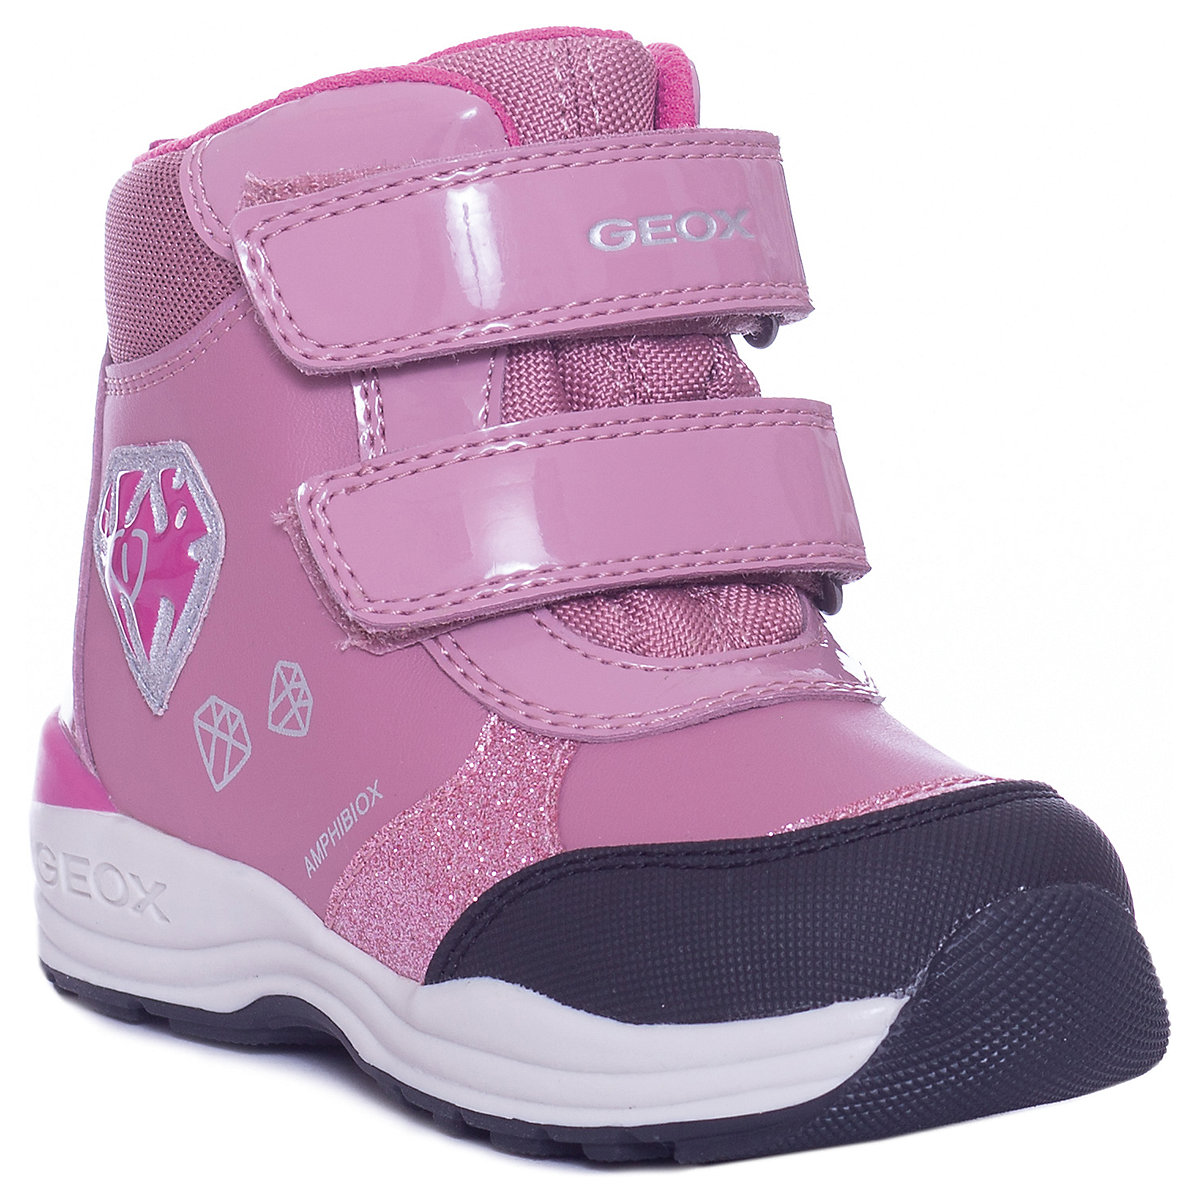 GEOX Boots 8786600 baby shoes For girl textile Winter peppa pig 57078